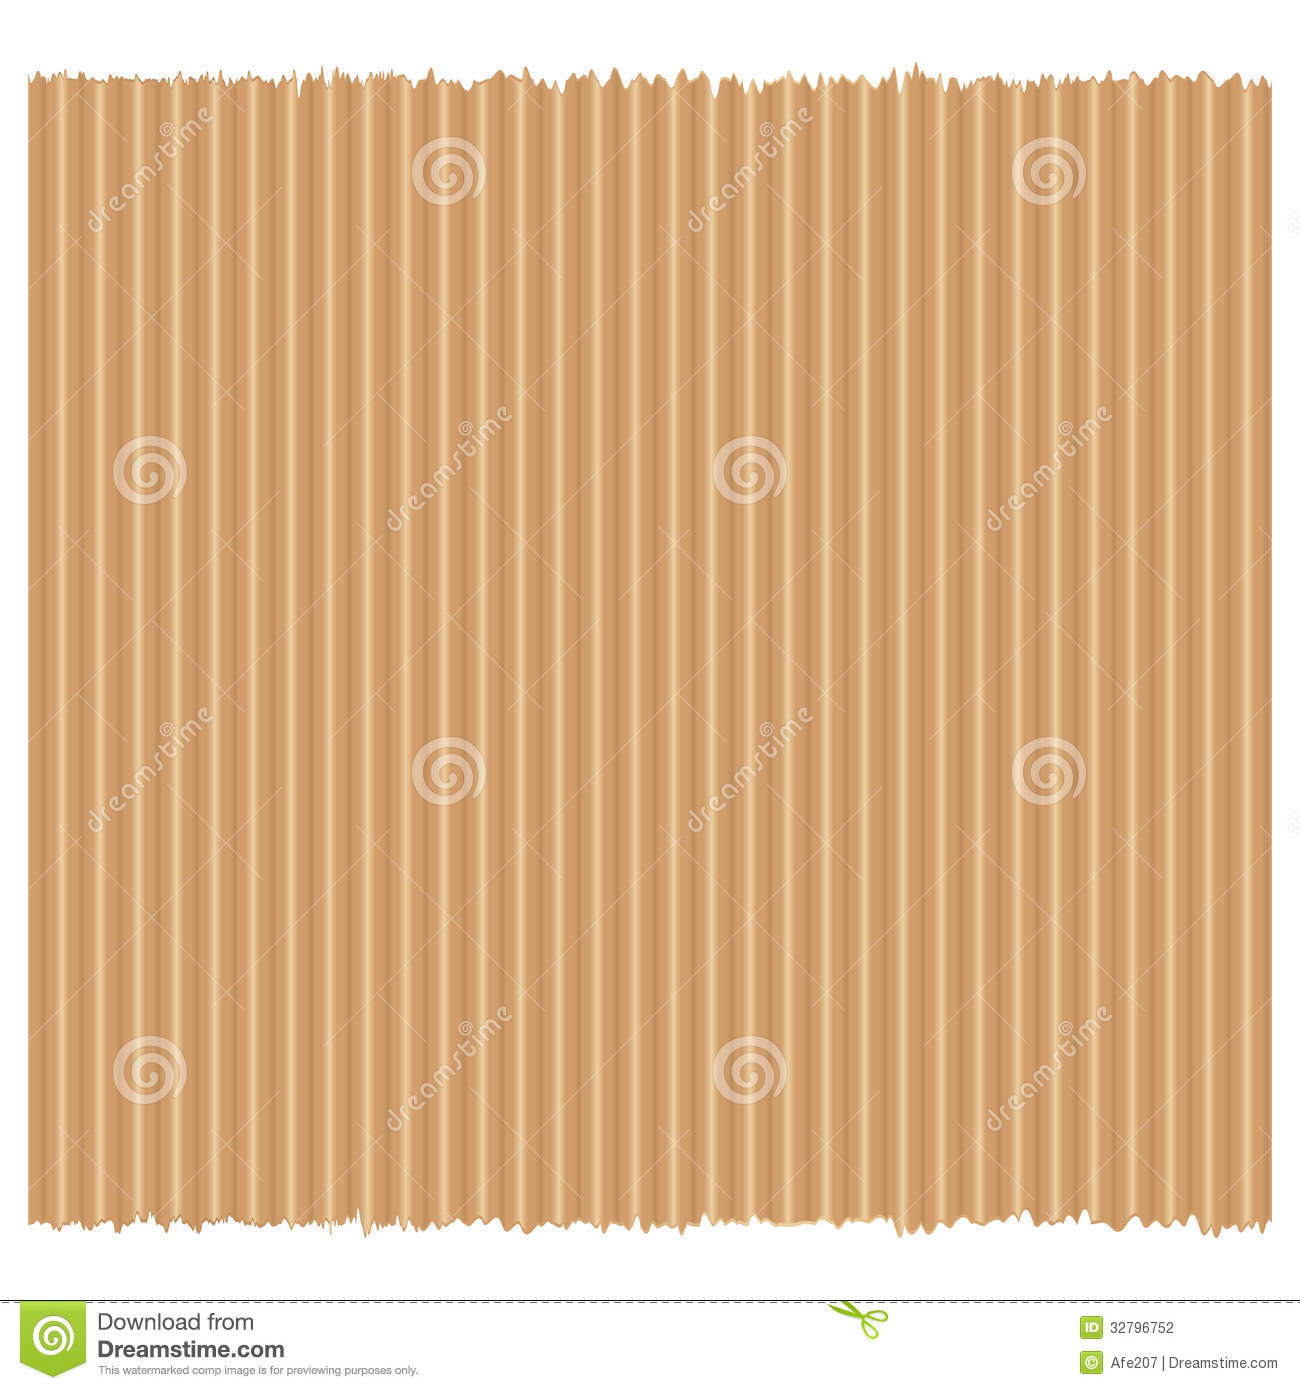 Brown Recycled Paper Cardboard Texture Vector Stock ...